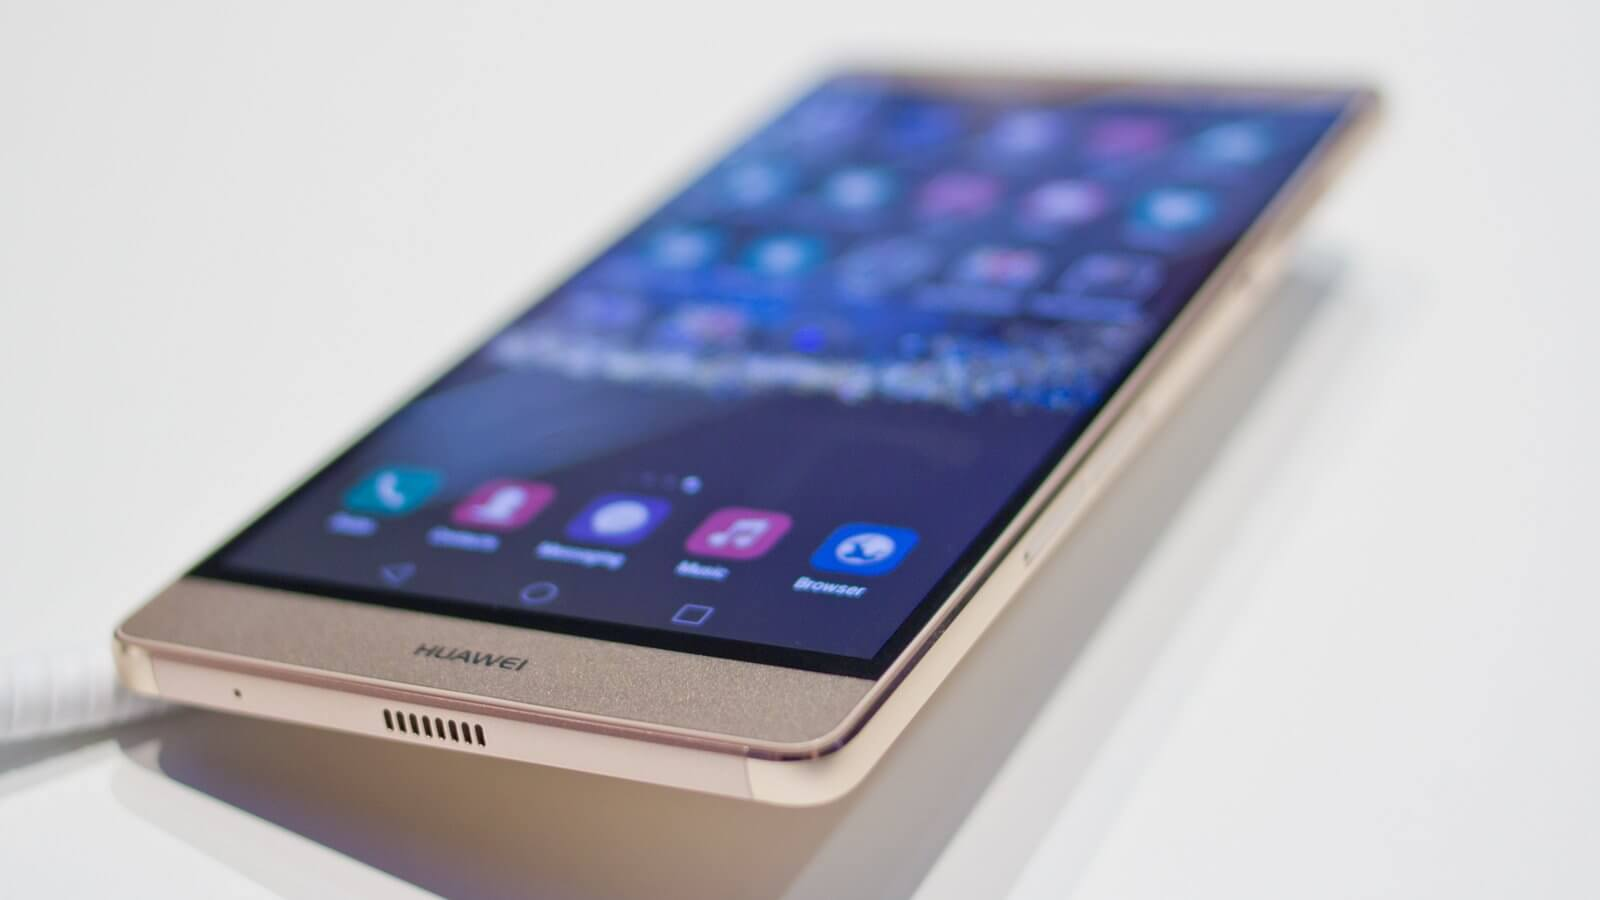 Huawei_P8_Max_review13